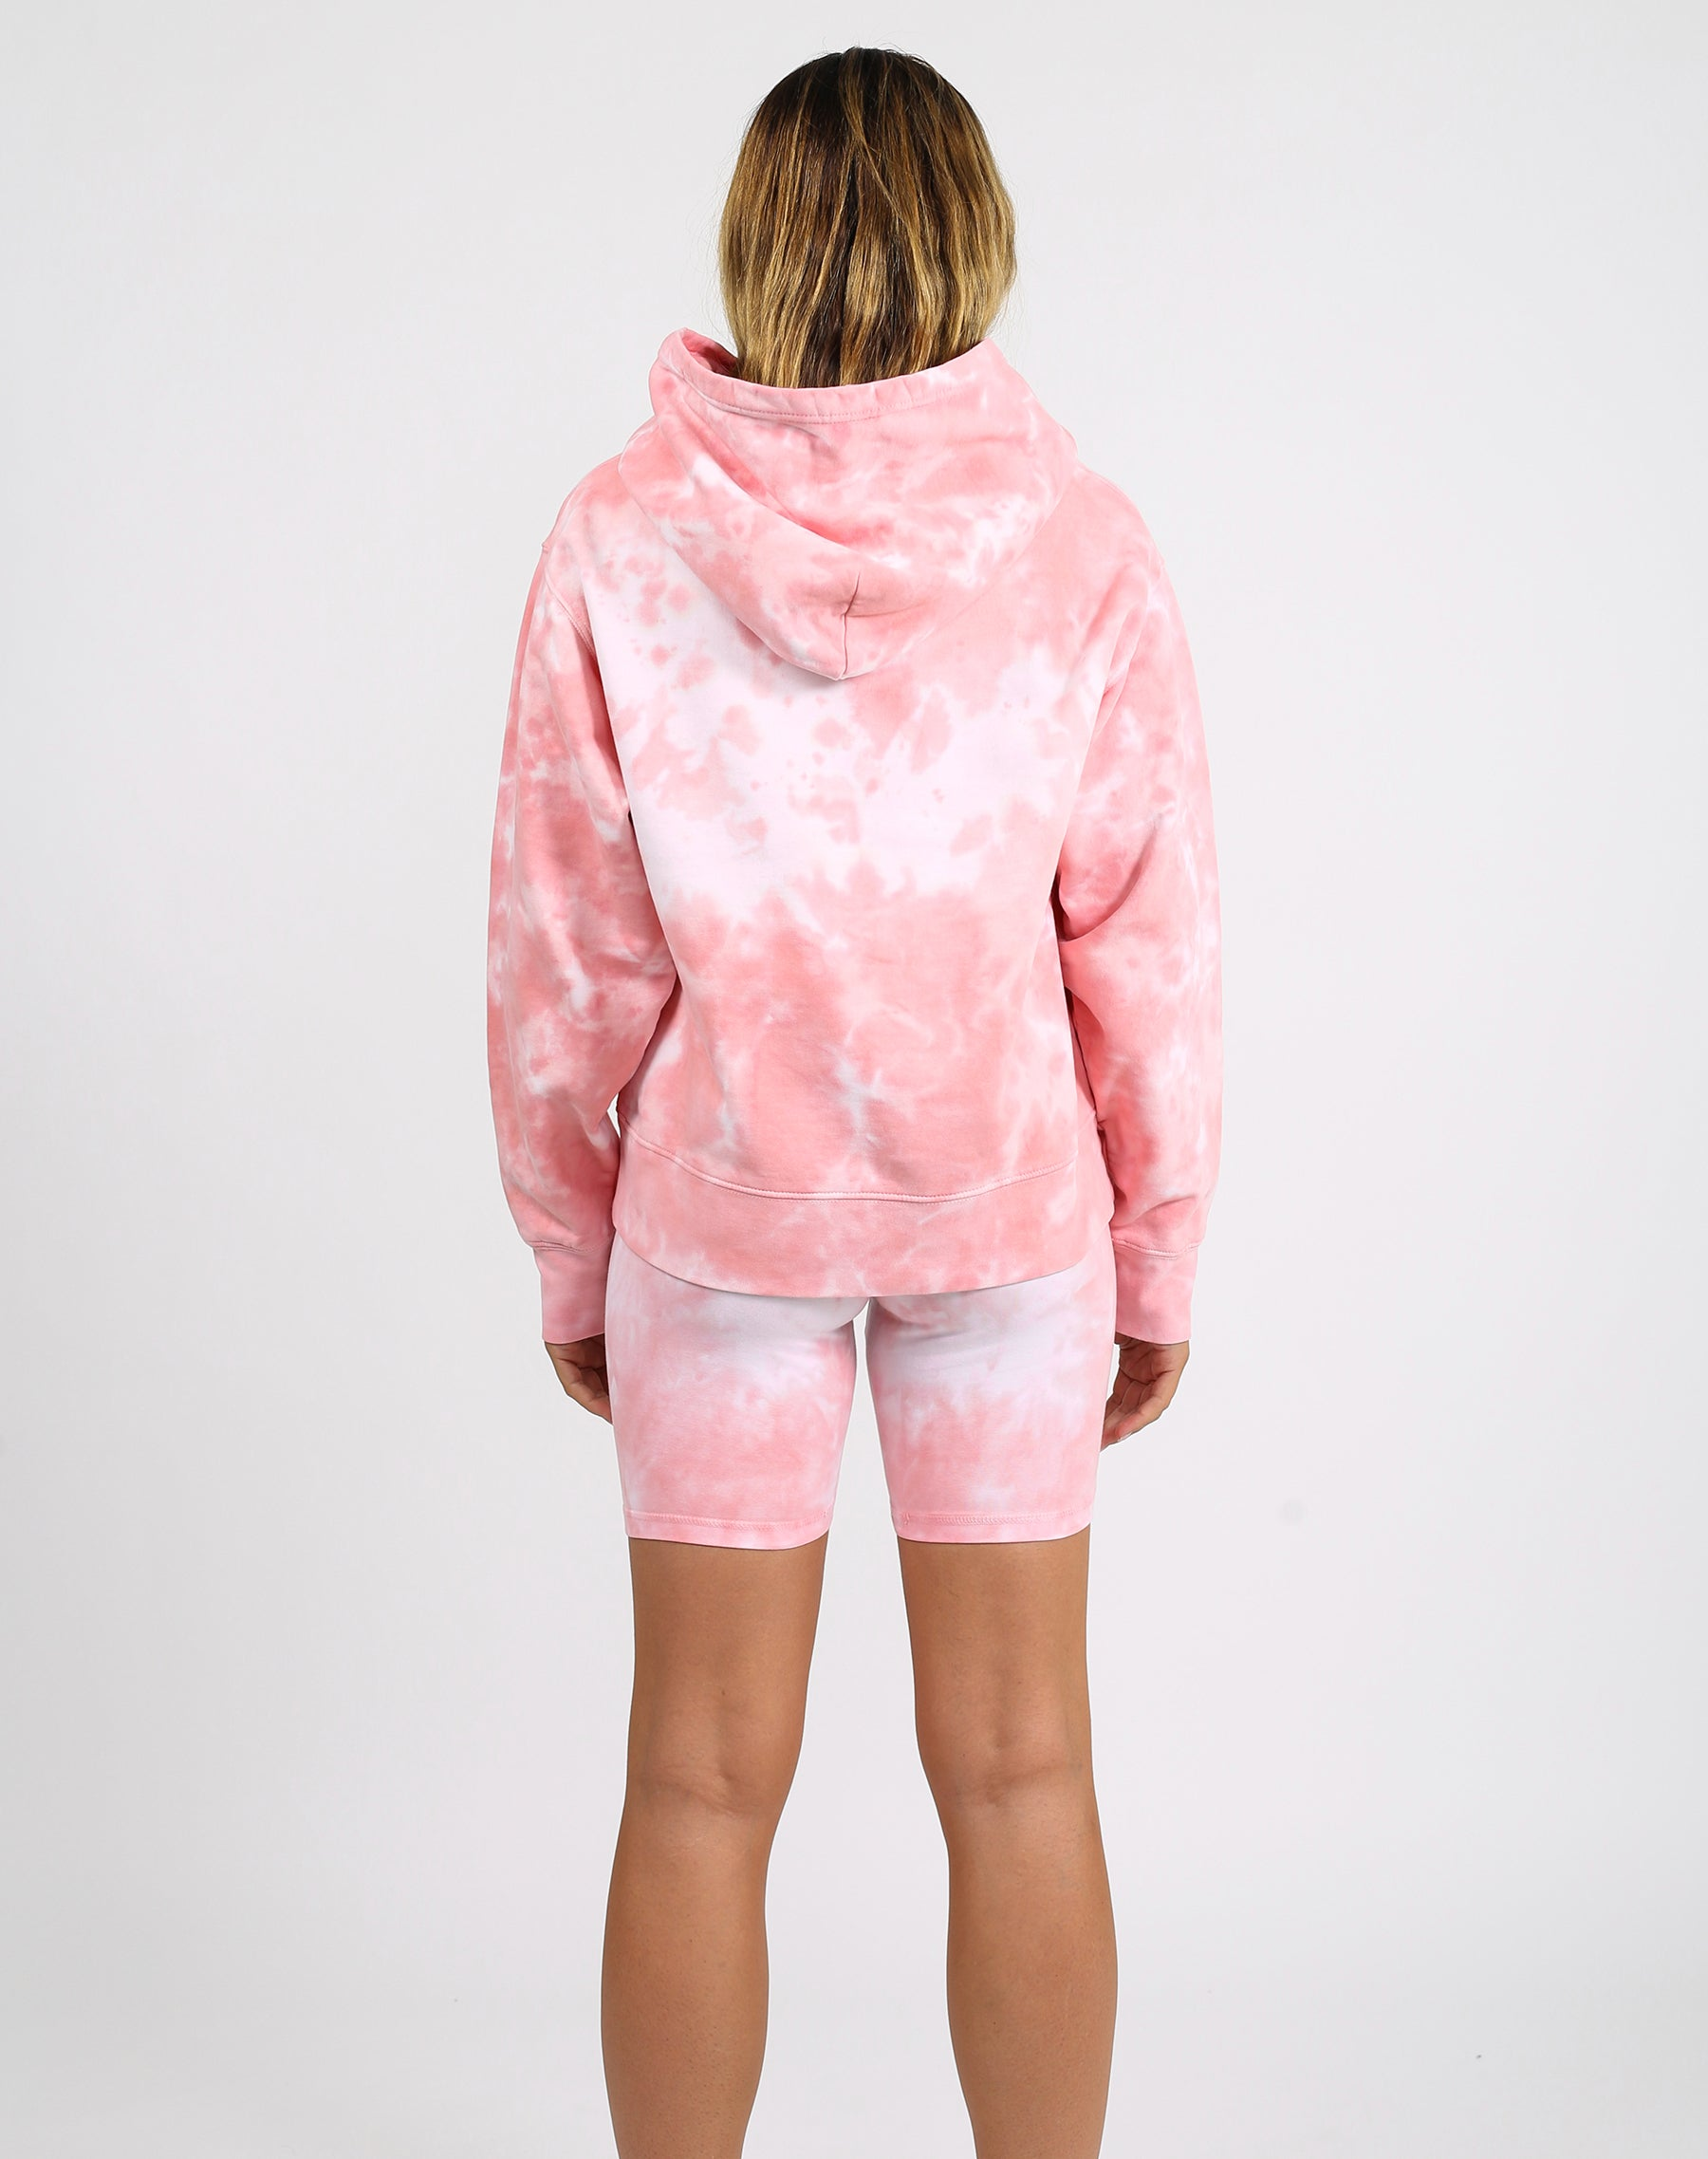 This is a photo of a model wearing the babes supporting babes step sister hoodie in pink marble by Brunette the Label x Juicy Couture.